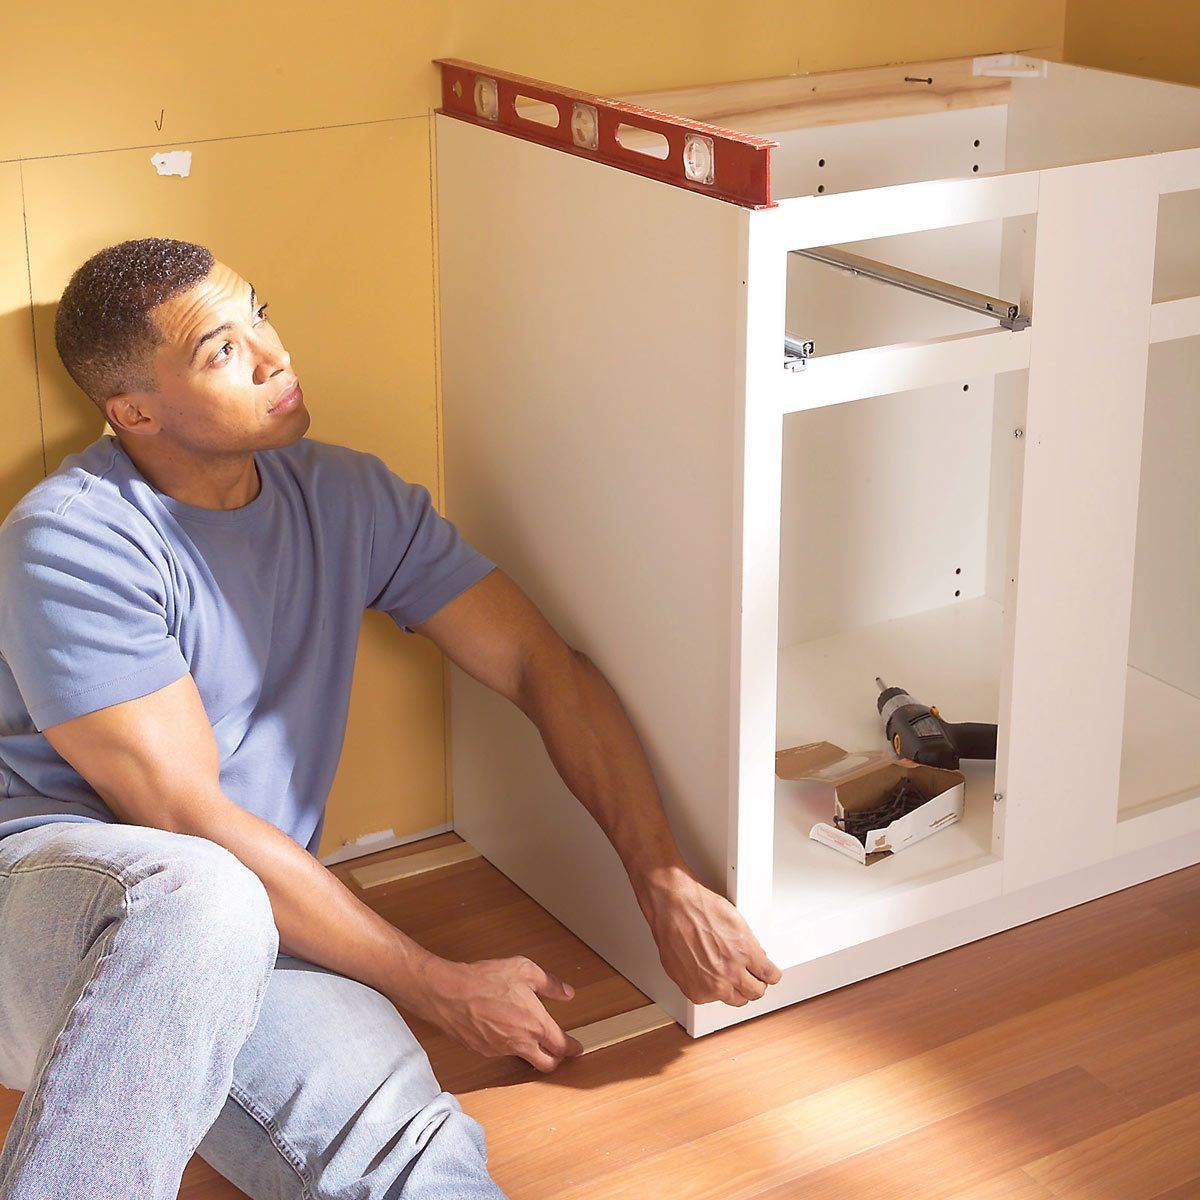 How To Install Cabinets Like A Pro In 2020 Installing Cabinets Installing Kitchen Cabinets Kitchen Wall Cabinets